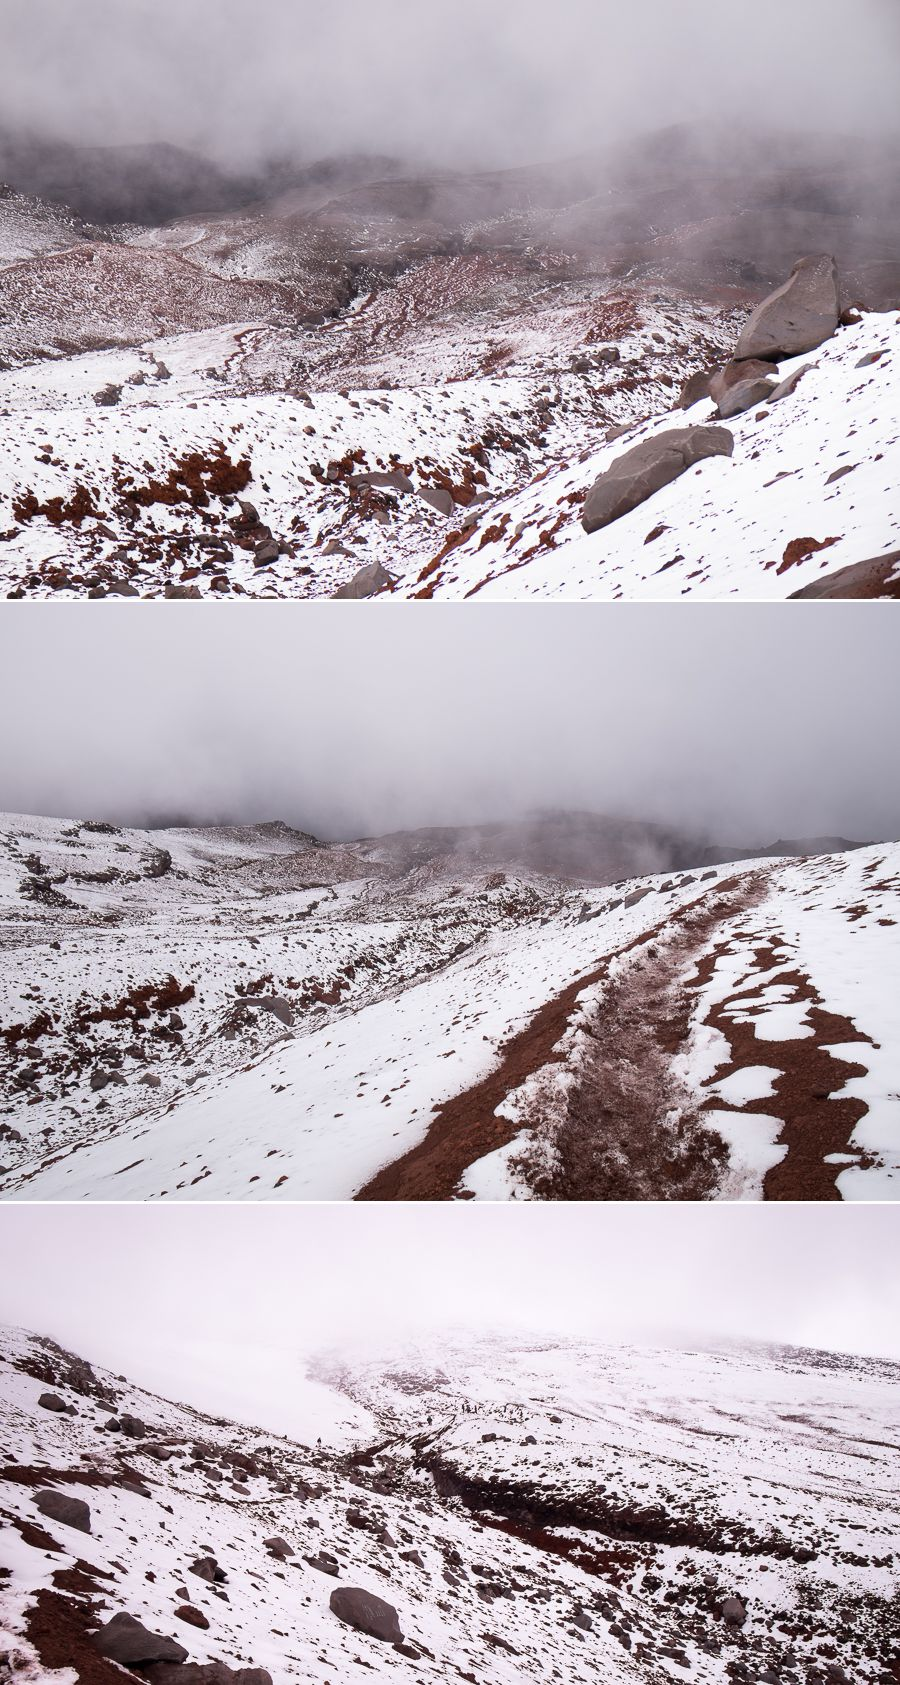 Views of the snowy landscape we encountered while hiking between the refugio and the glacier on Volcán Cotopaxi in Ecuador